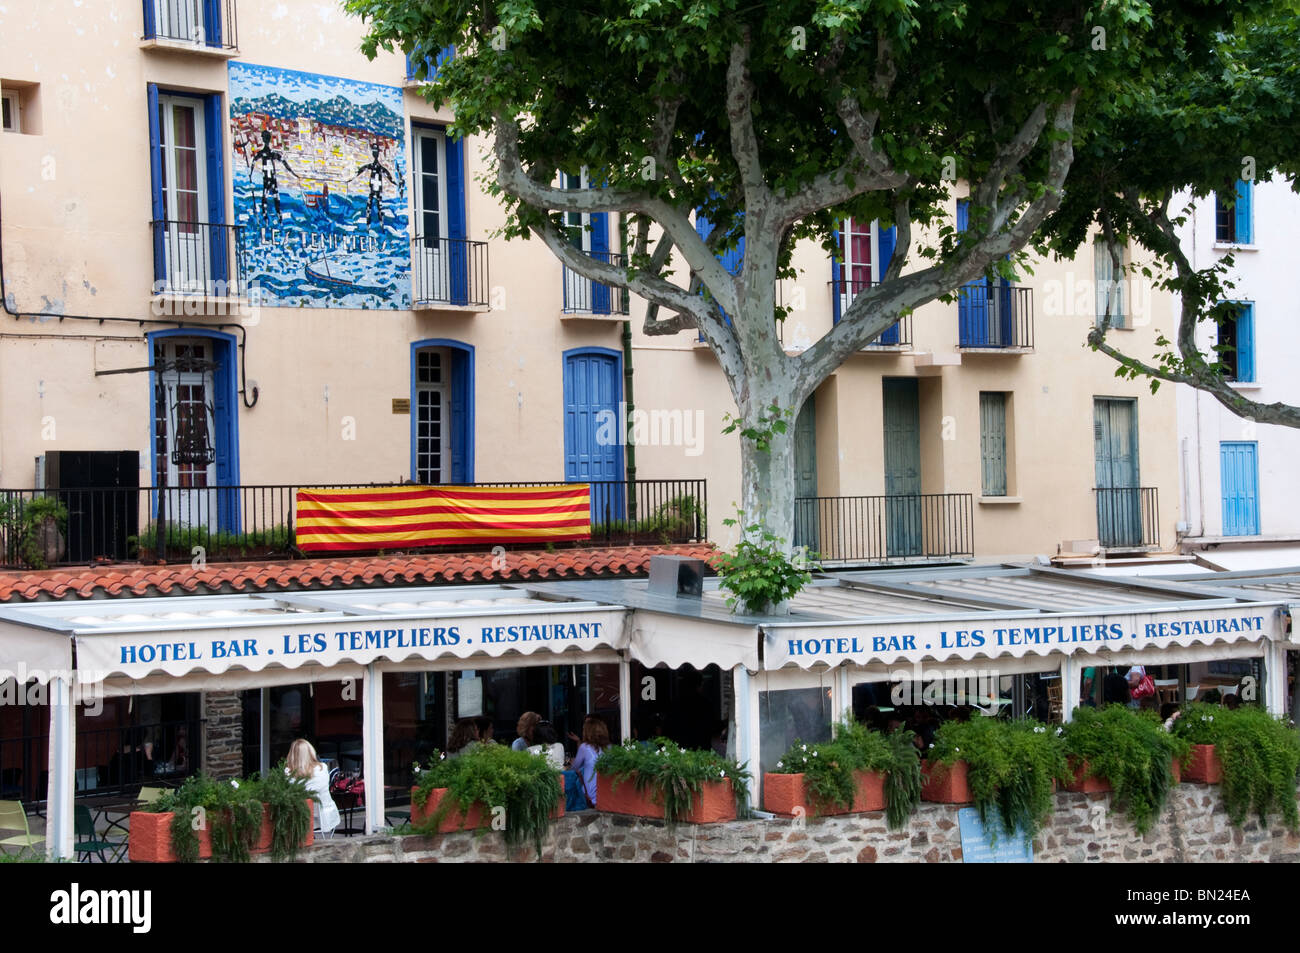 Les Templiers restaurant in Collioure, Southern France - Stock Image